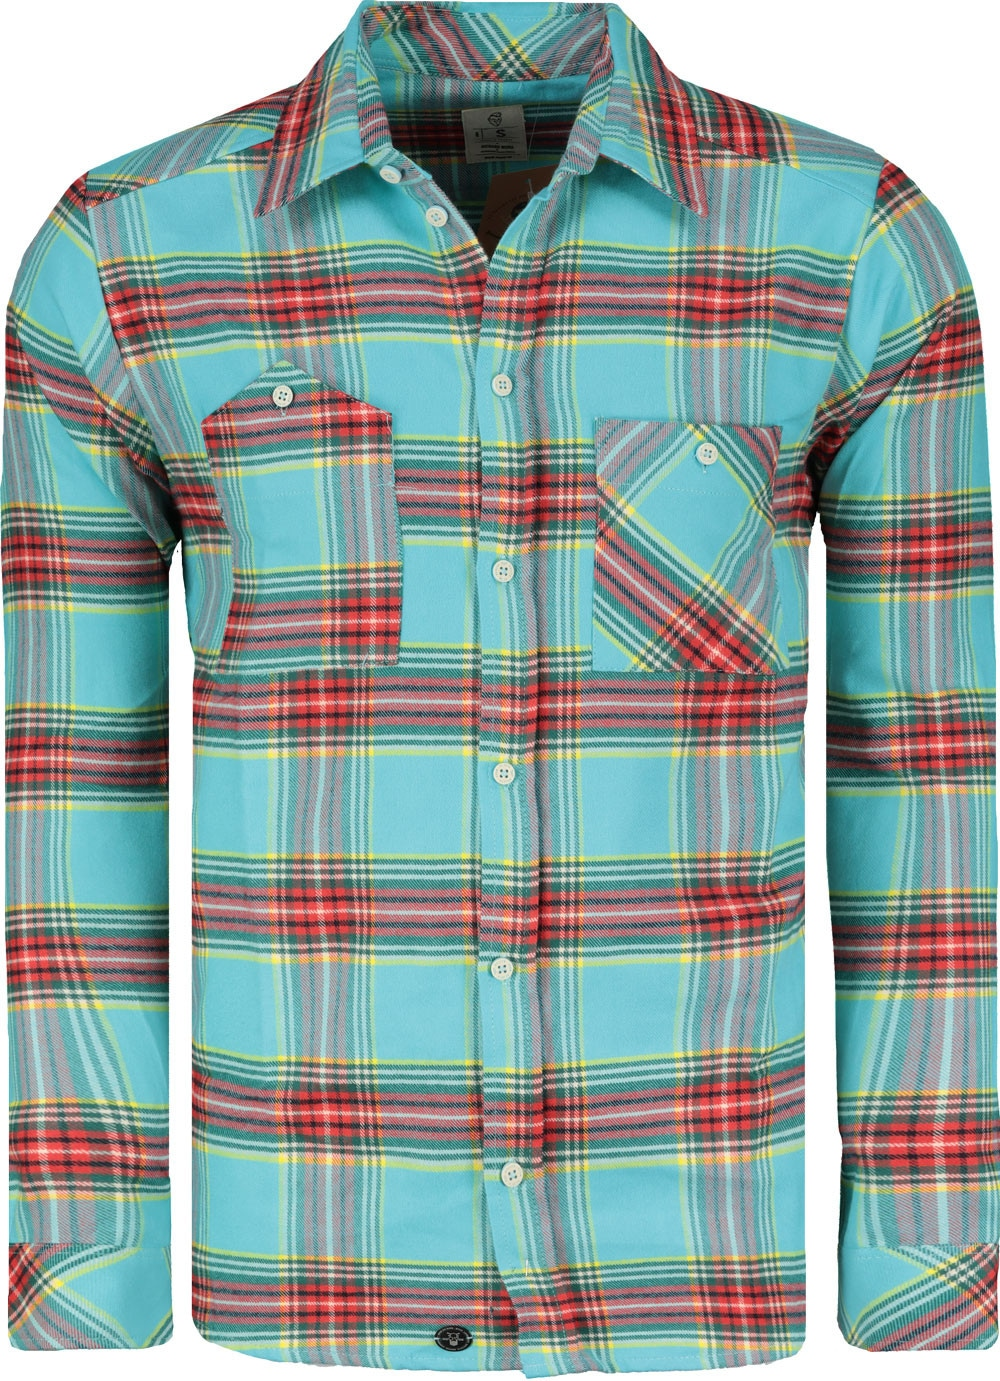 Men's Shirt WOOX Checked